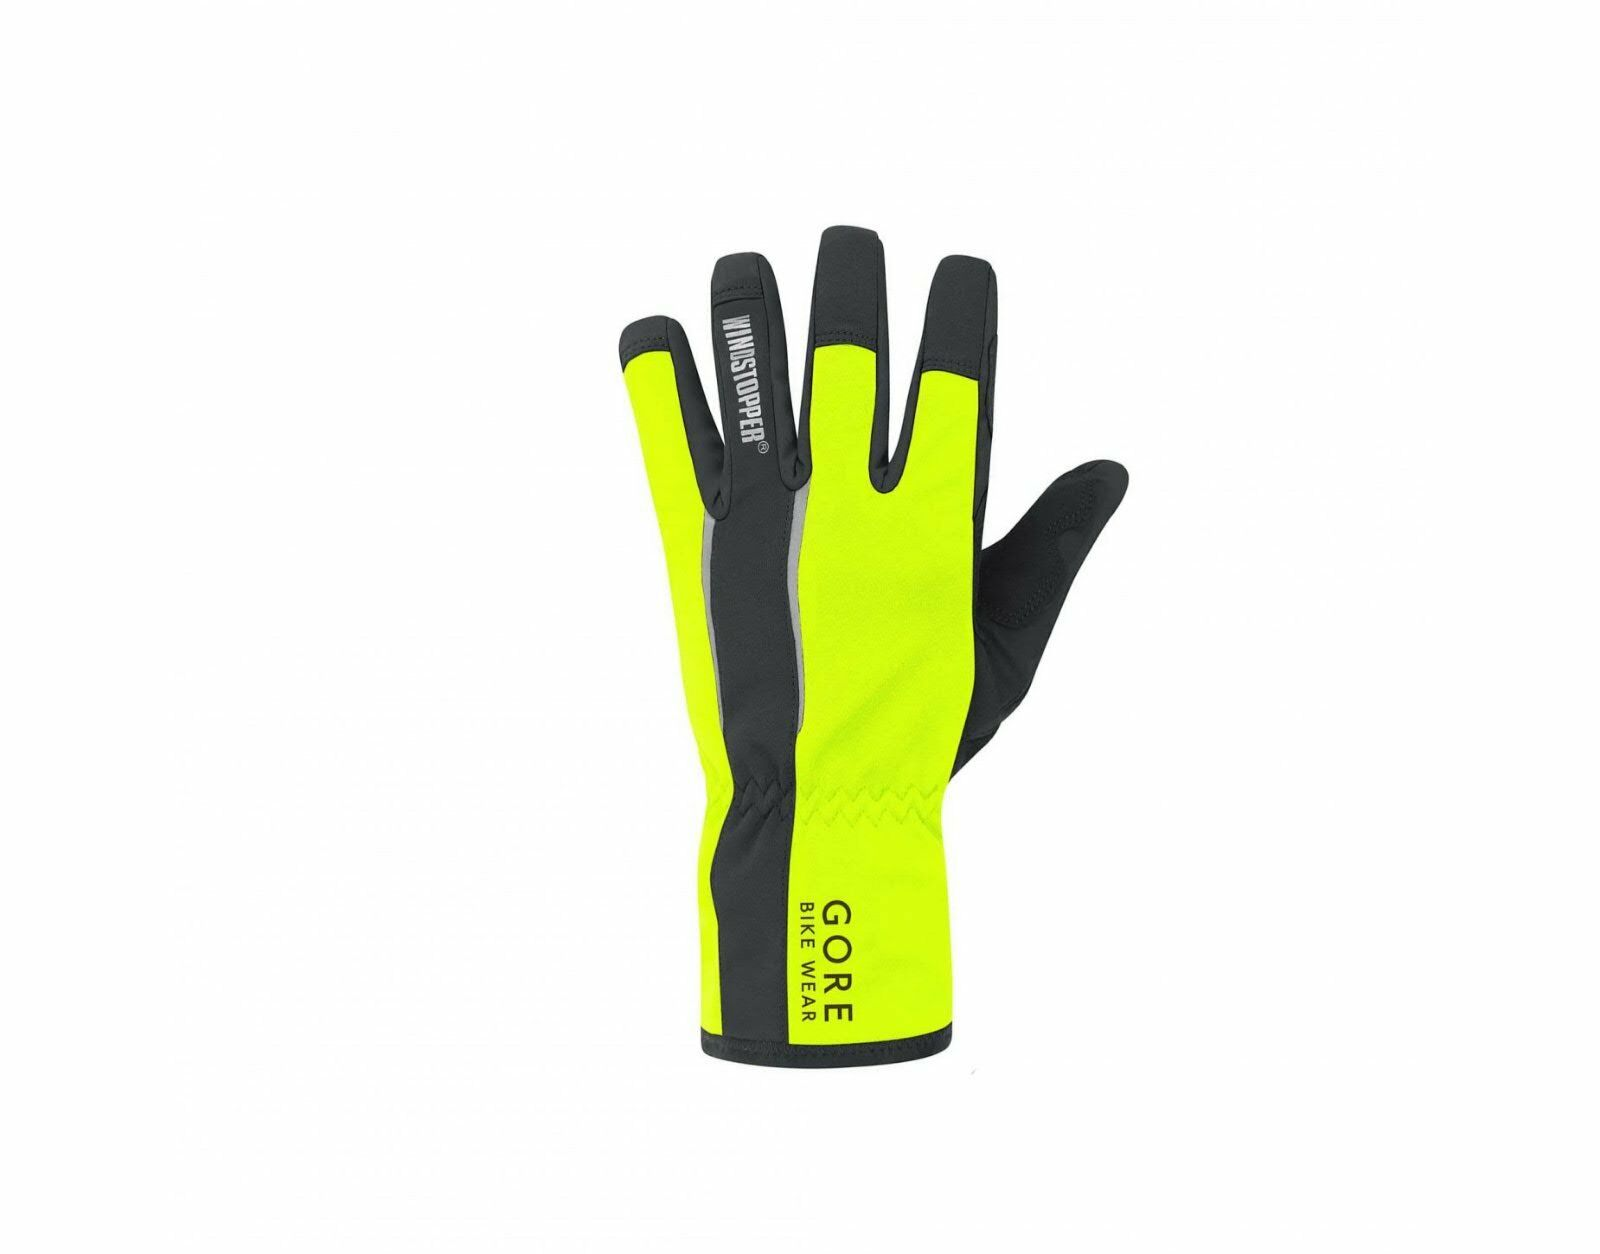 Gore ® Bike Wear Power Power Power tan gloves, negro/Neon Amarillo, XL/9 nuevo embalaje original 78d326